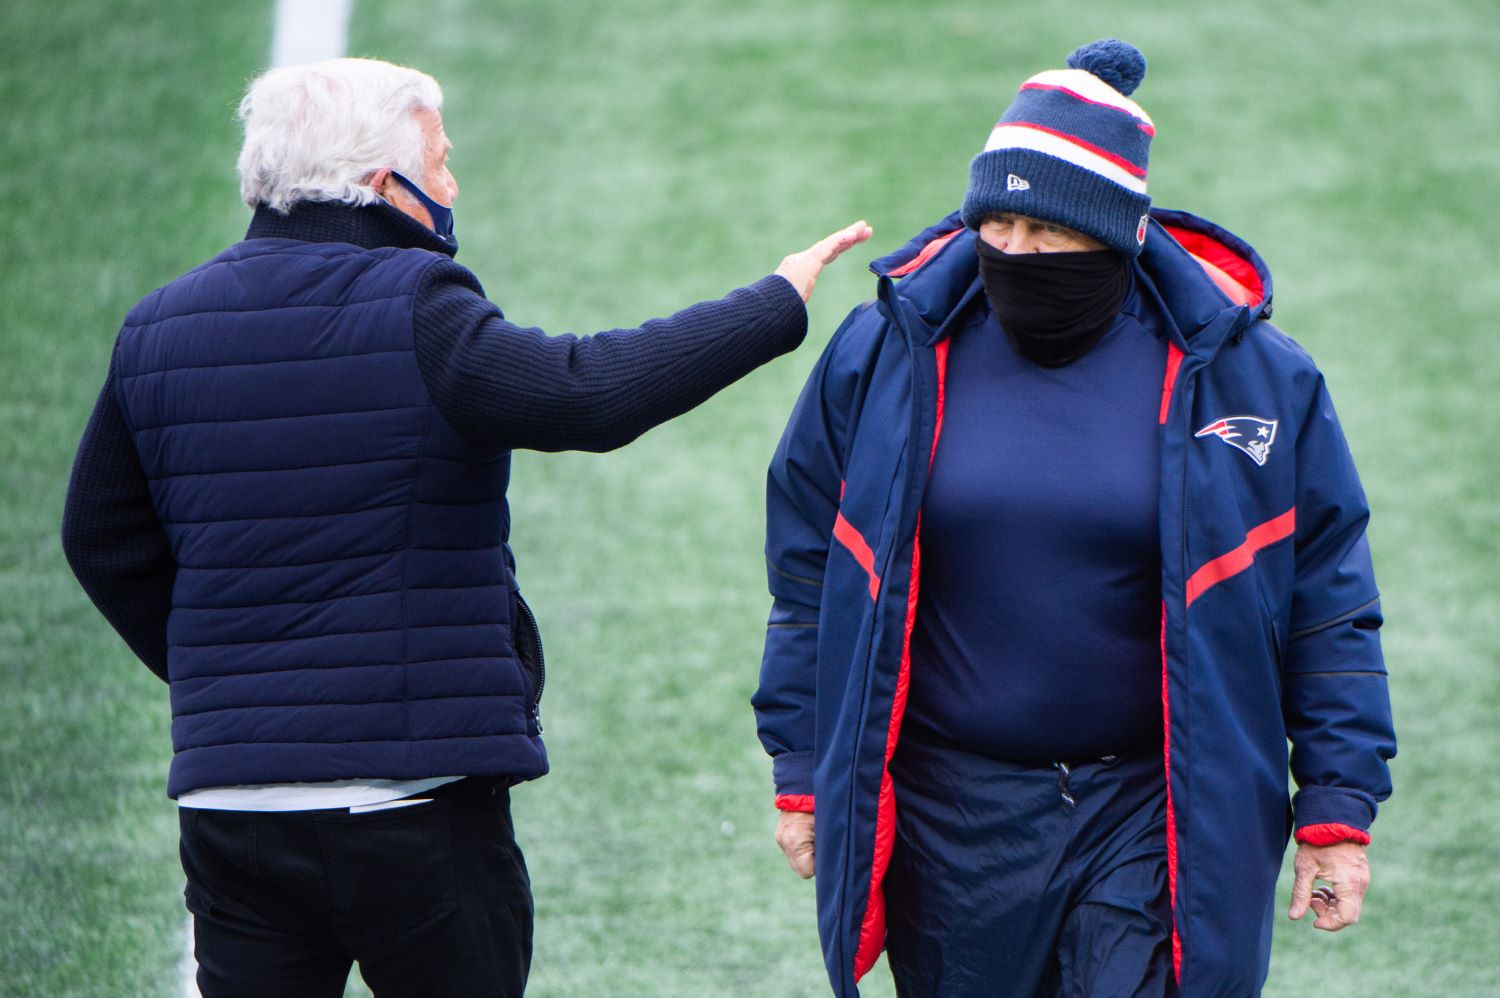 Bill Belichick is stealing more than $20 million a year from Robert Kraft and the Patriots if the latest report about his annual salary is actually true.